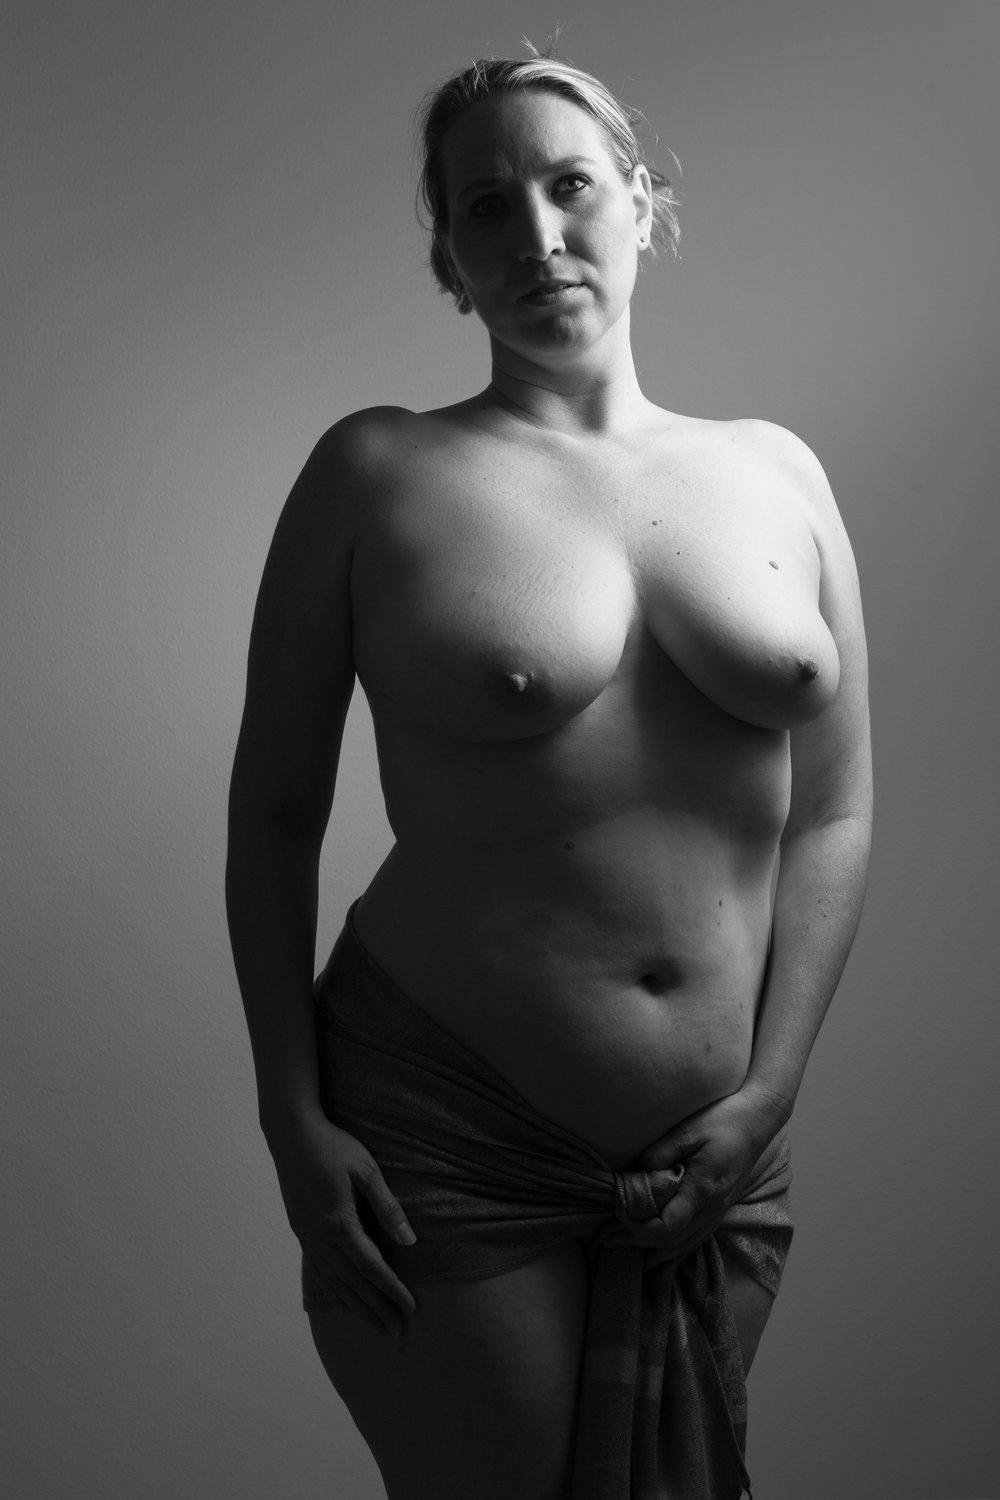 My nude year - Shannon Purdy Day 118